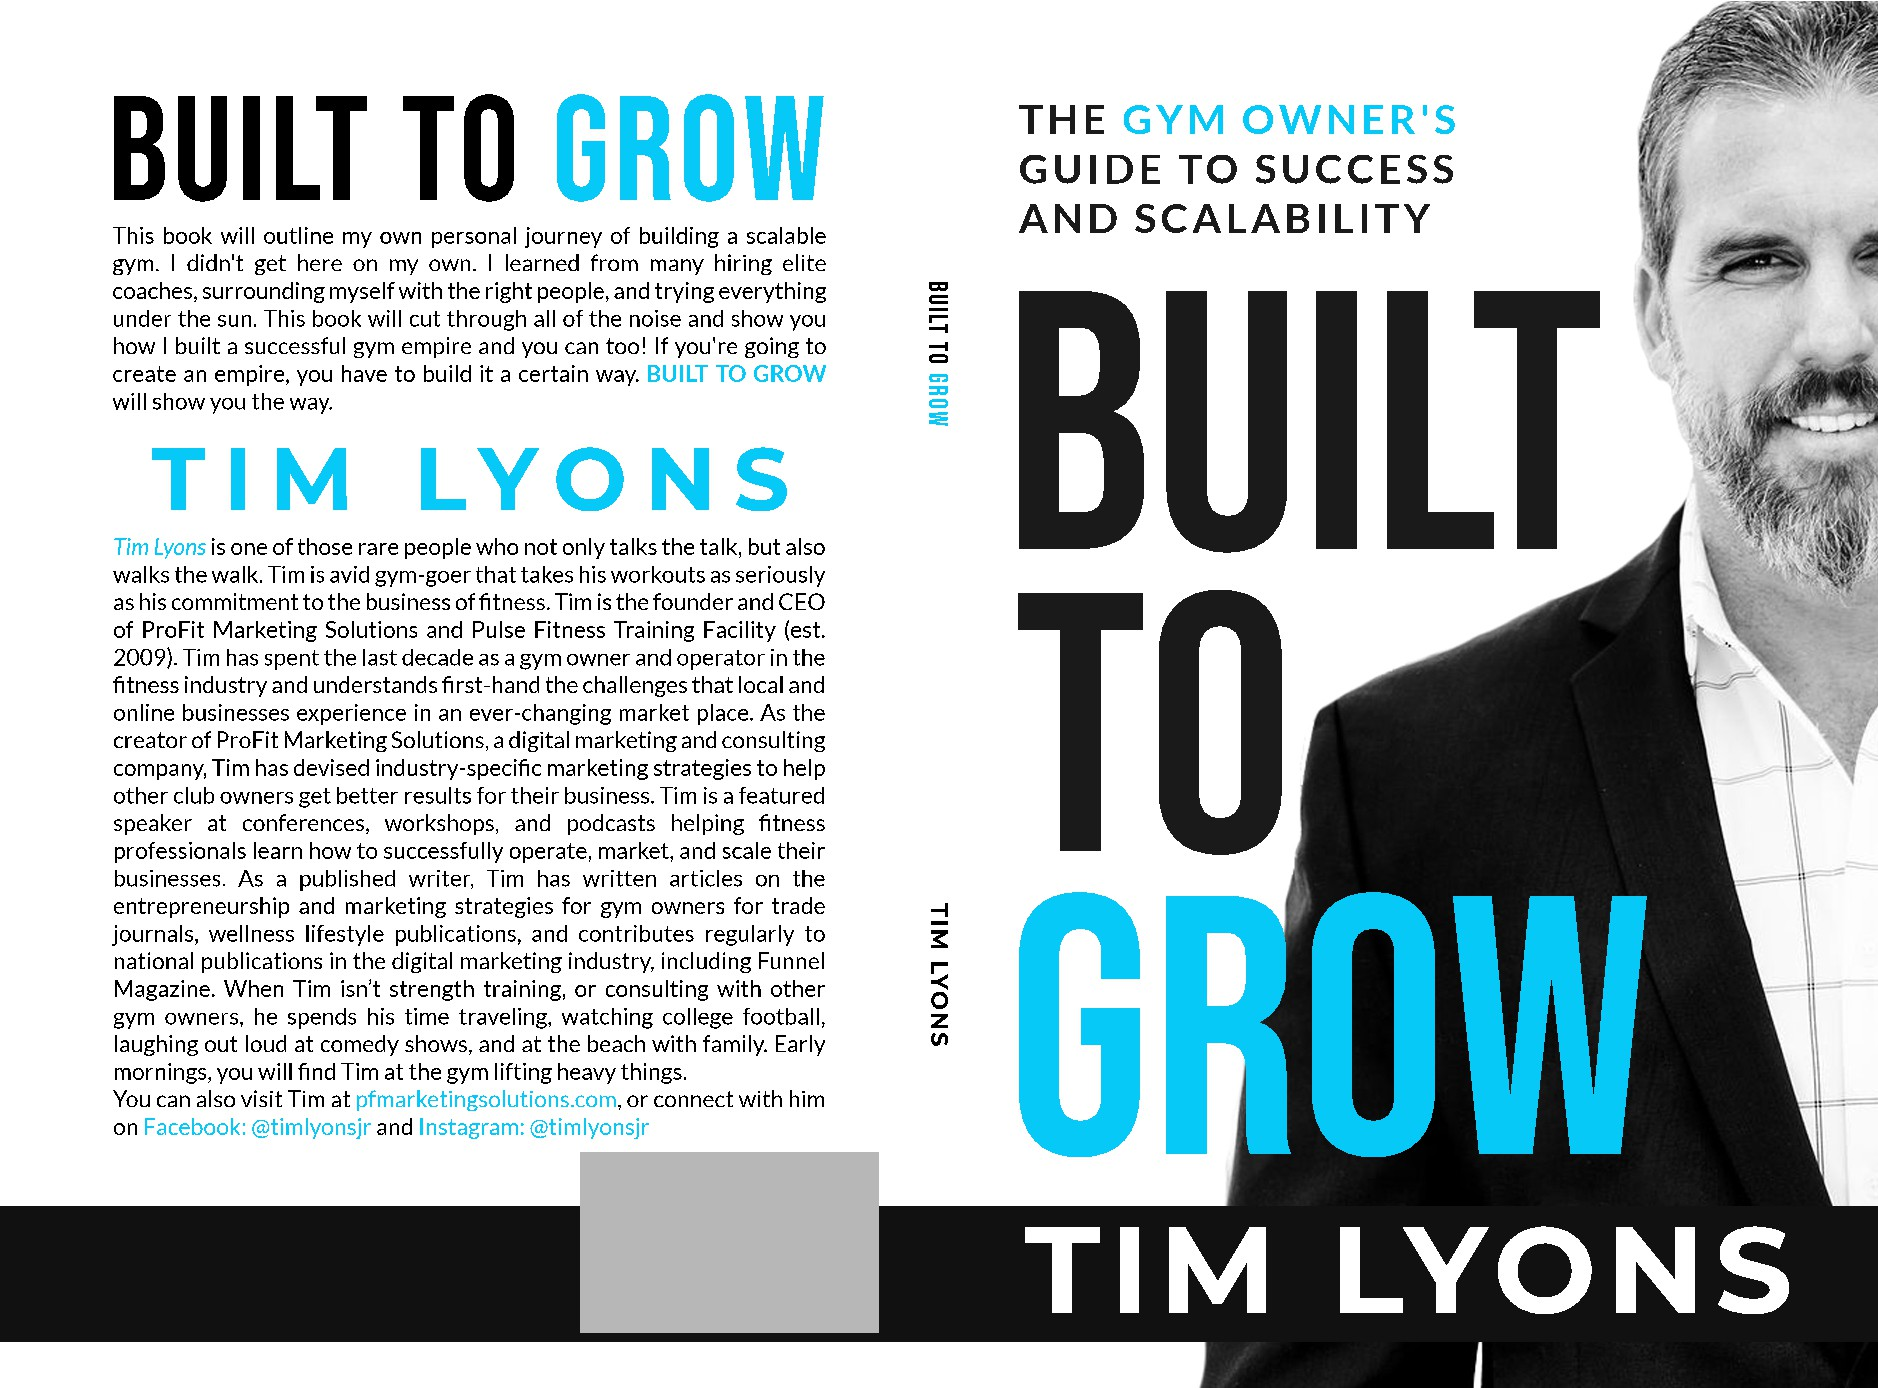 🏋️BUILT TO GROW GYM OWNER'S GUIDE 💪